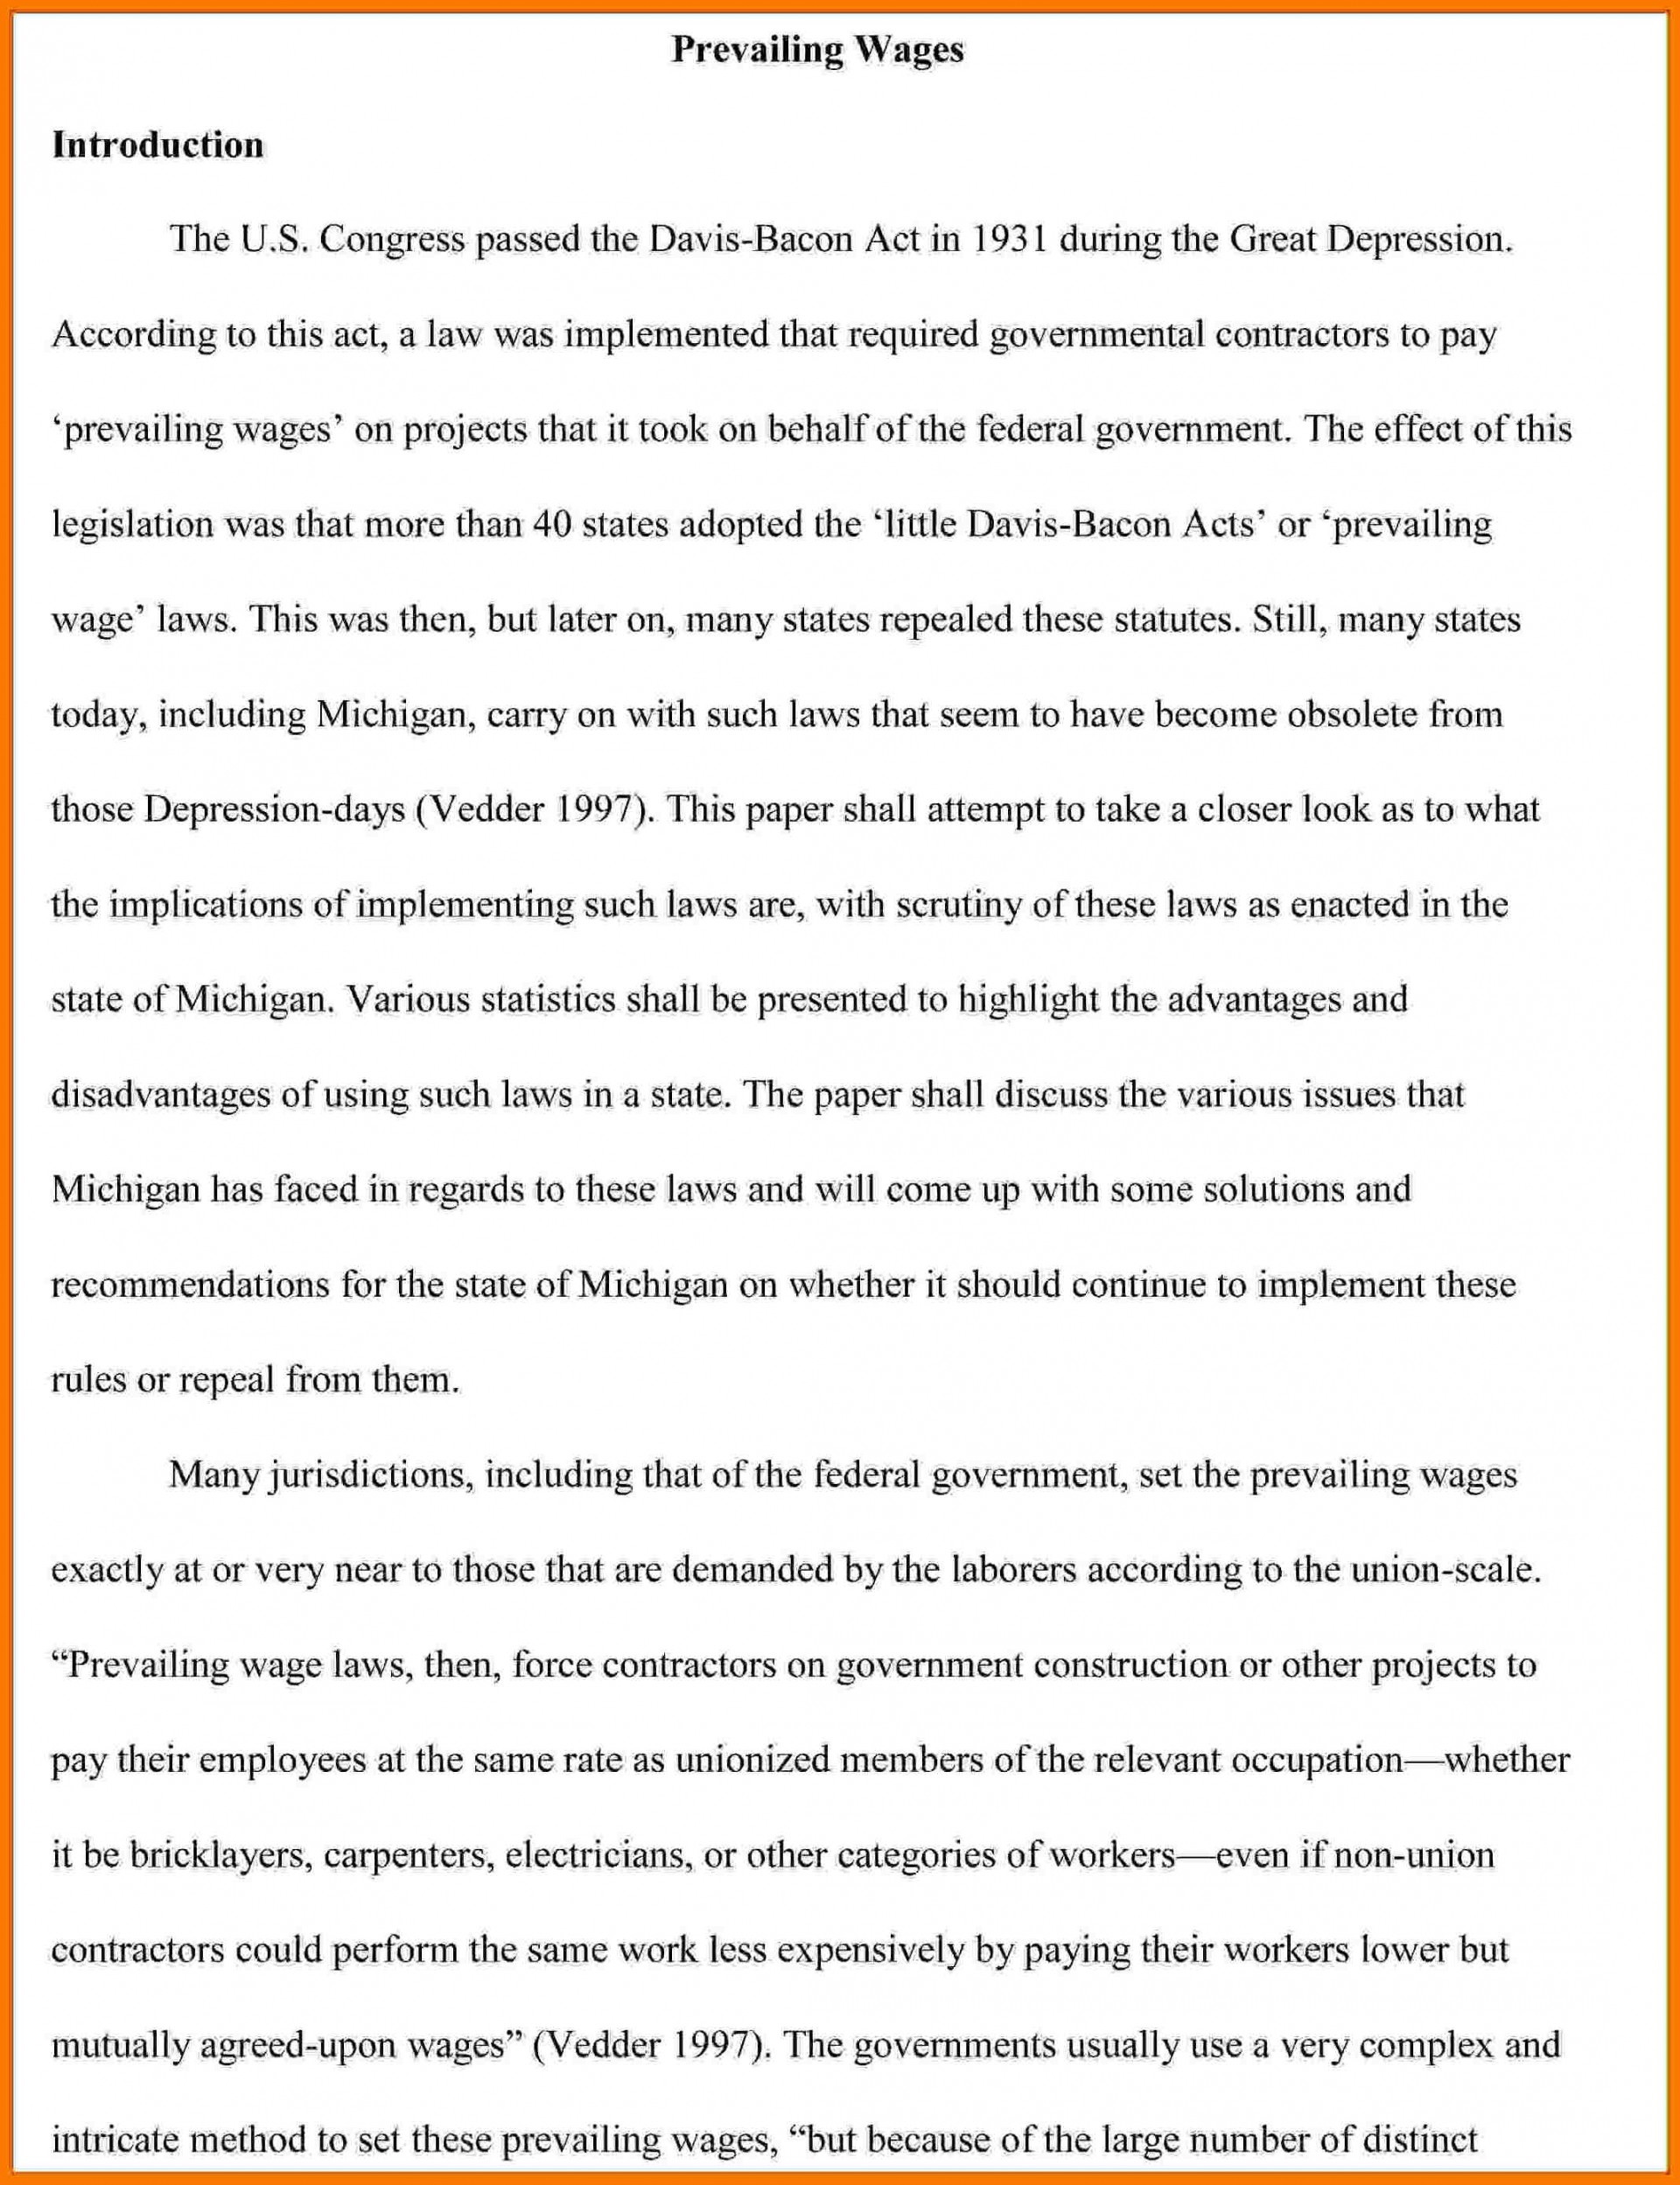 002 Collection Of Solutions Introduction Apa Paper Great Research How To Write Archaicawful For Sample Writing An A Style 1920